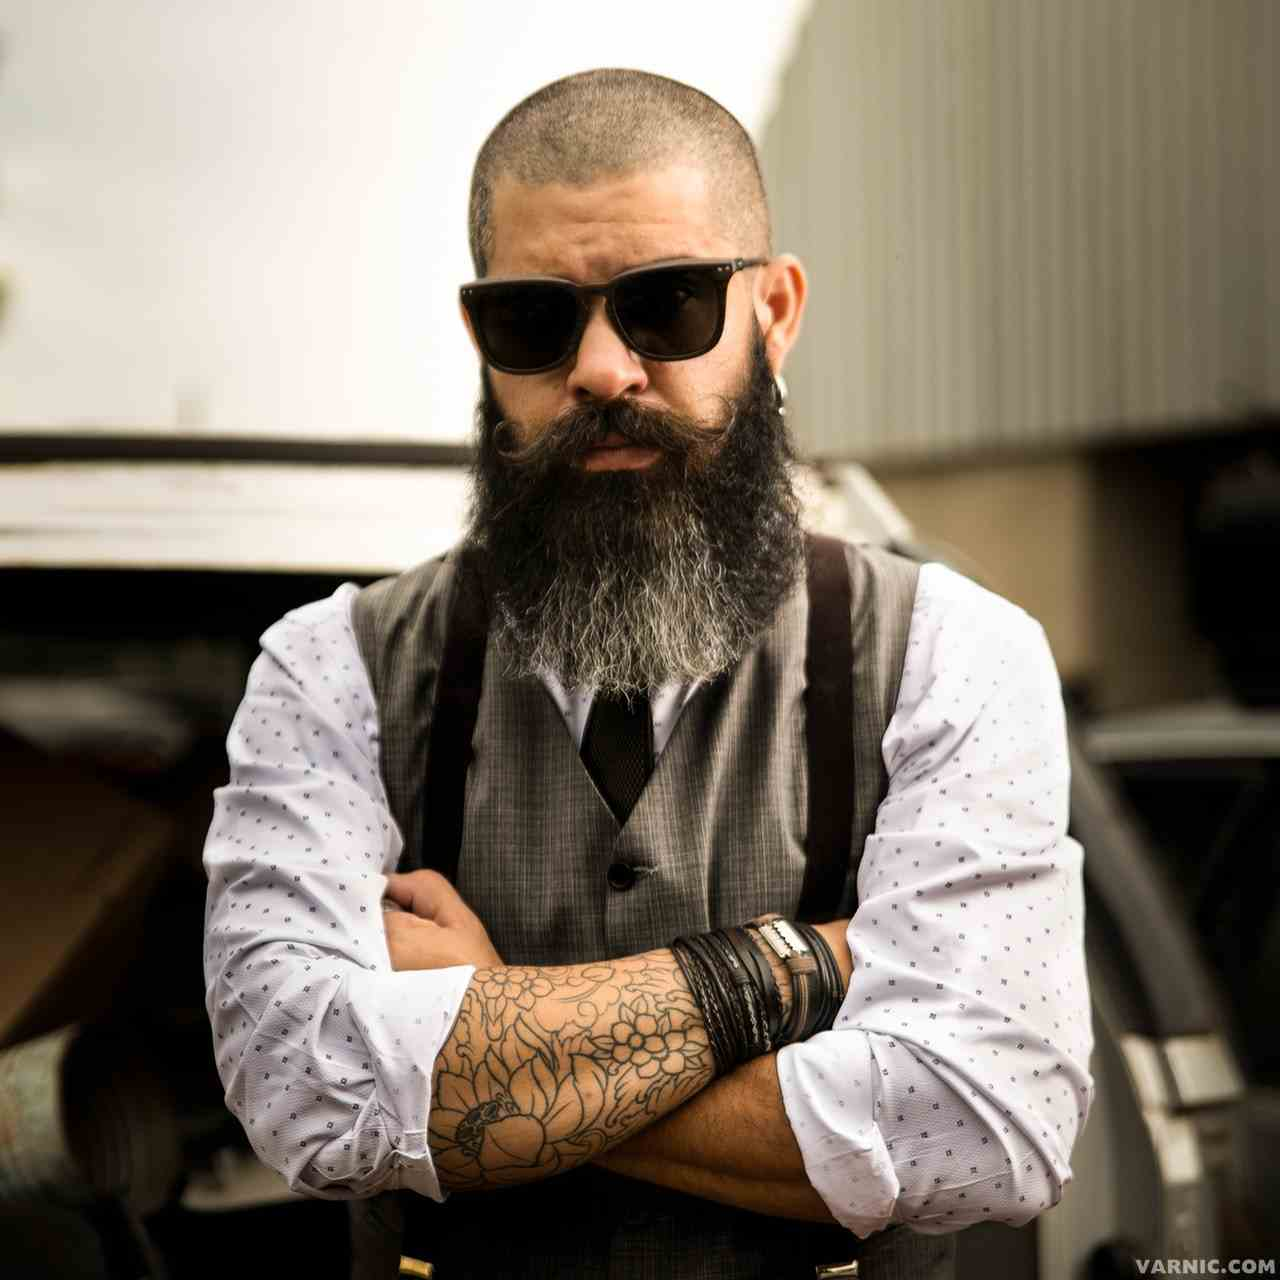 Are You Ready for A Good Beard Day? | Varnic